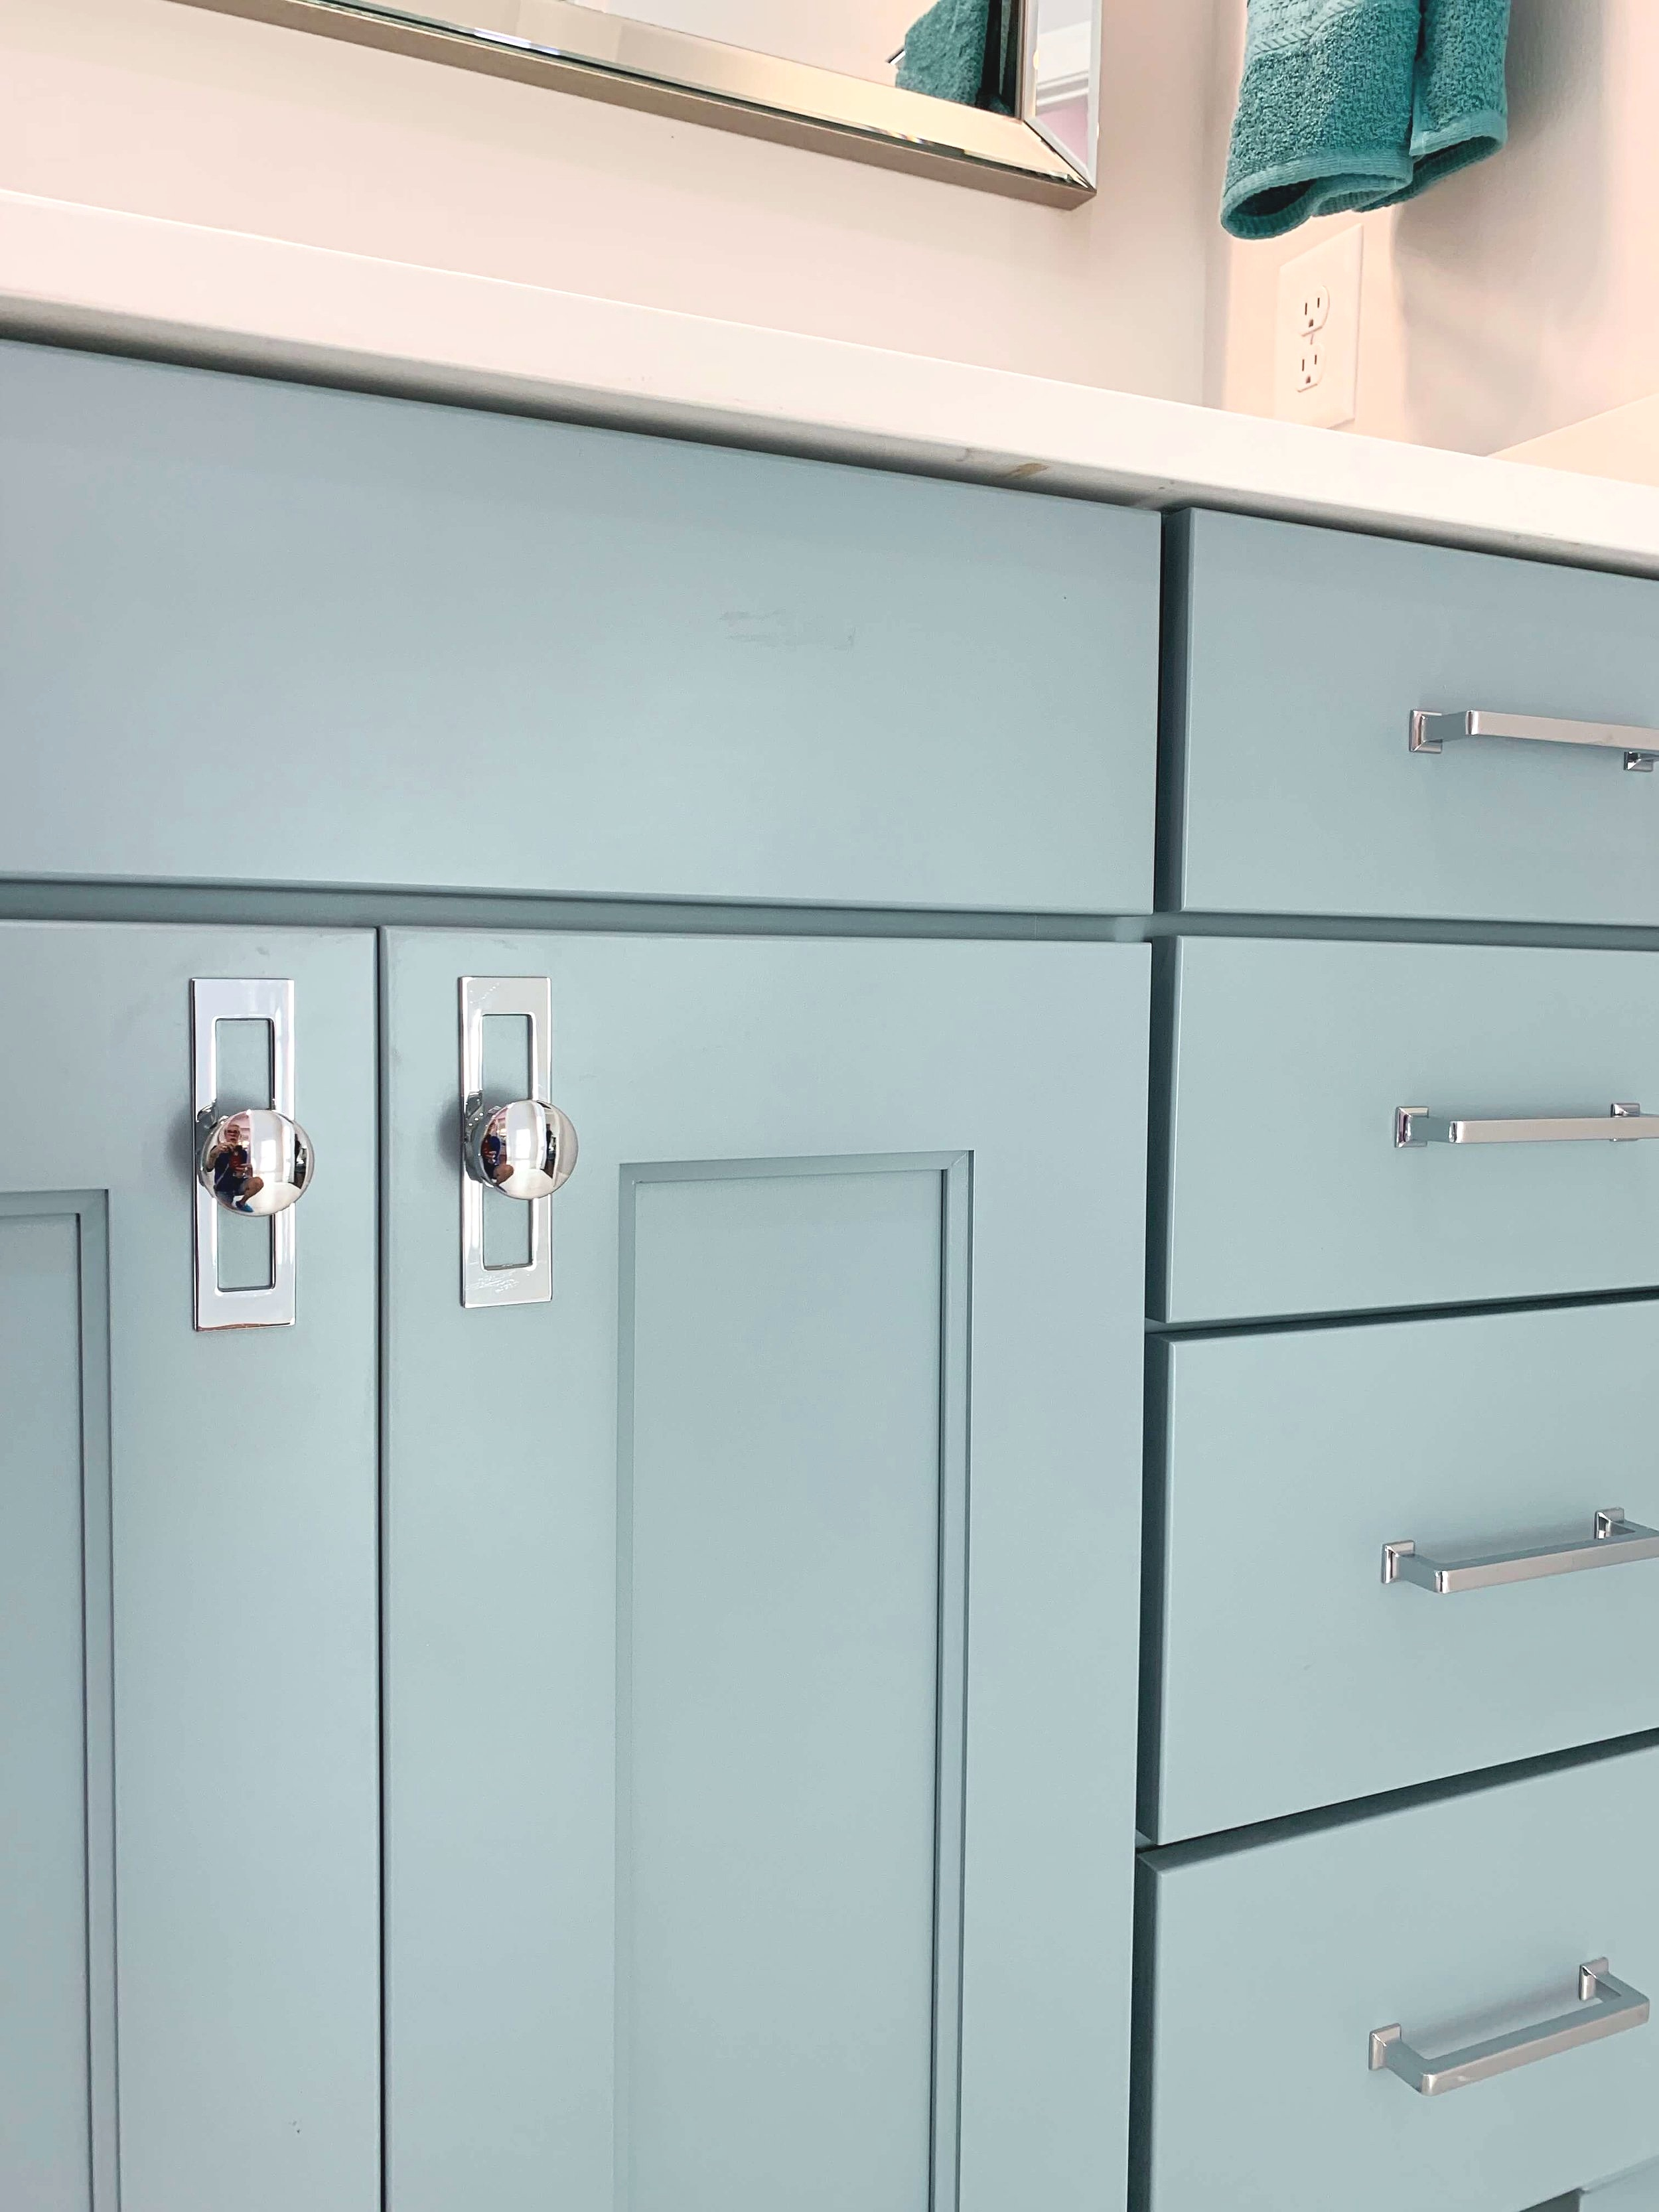 Blue bathroom cabinets with updated modern chrome hardware knobs and pulls.